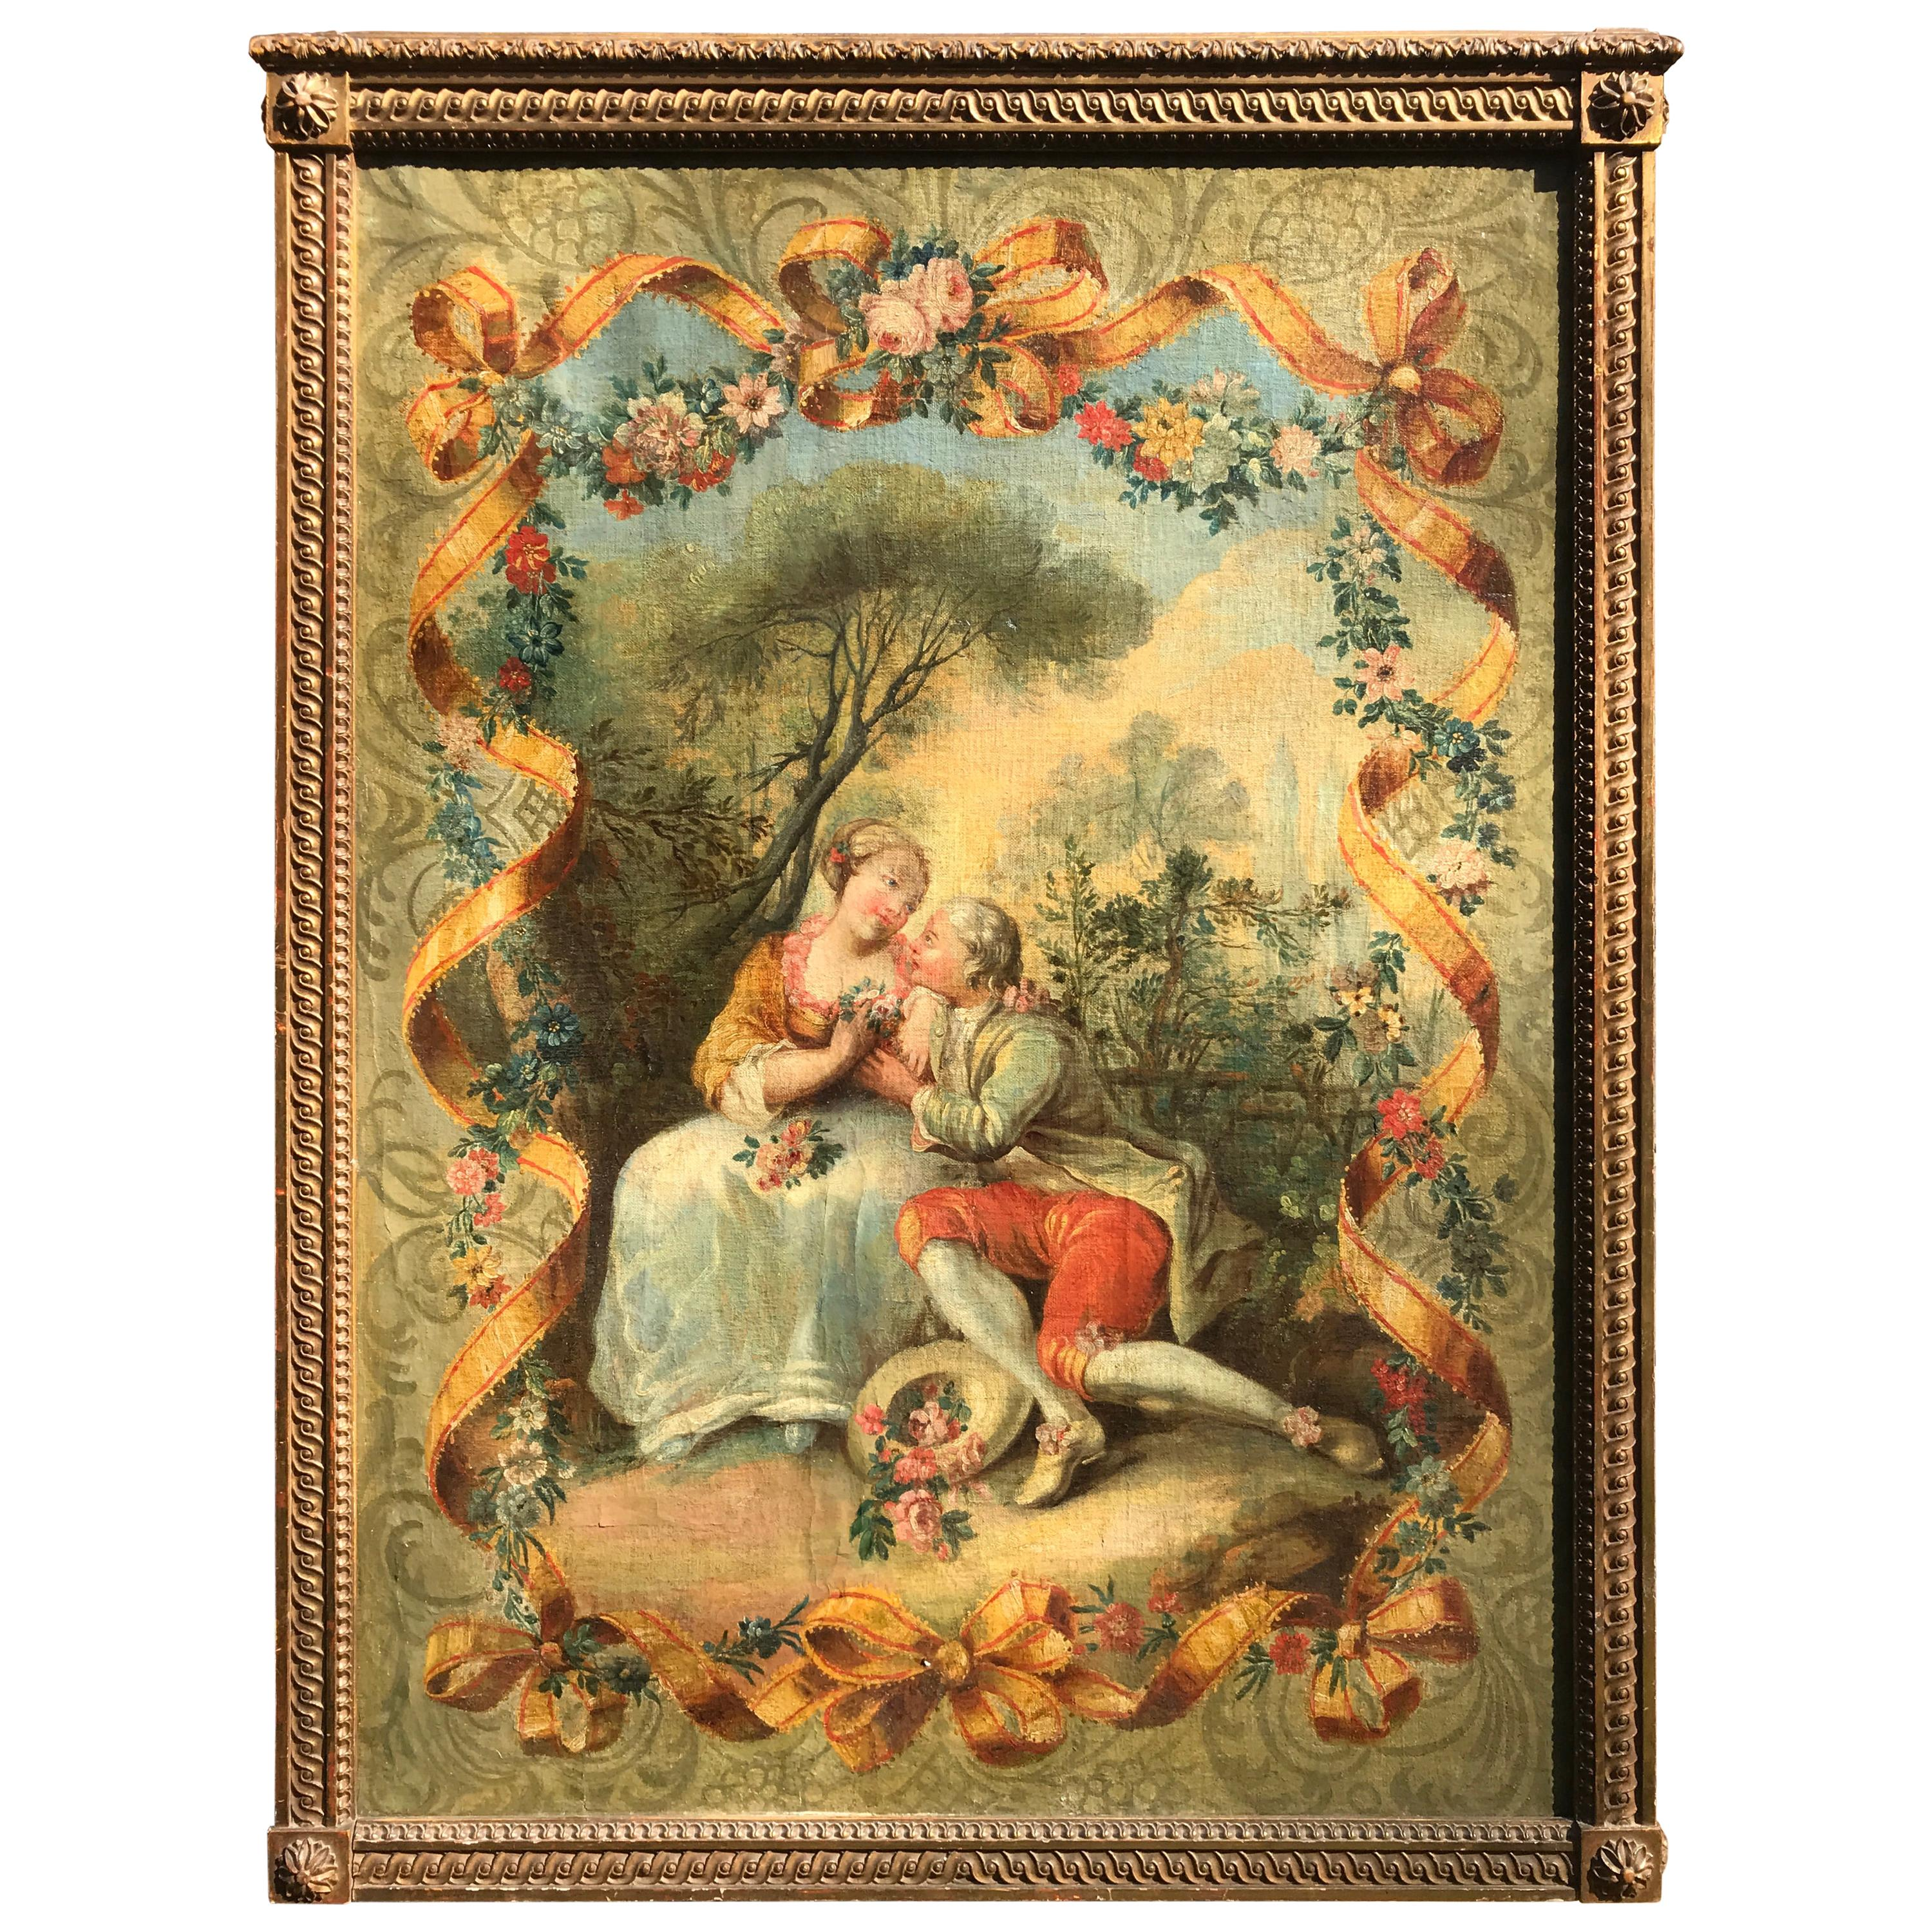 Large Louis XV Style Rococo Large Painting Manner of Boucher French School